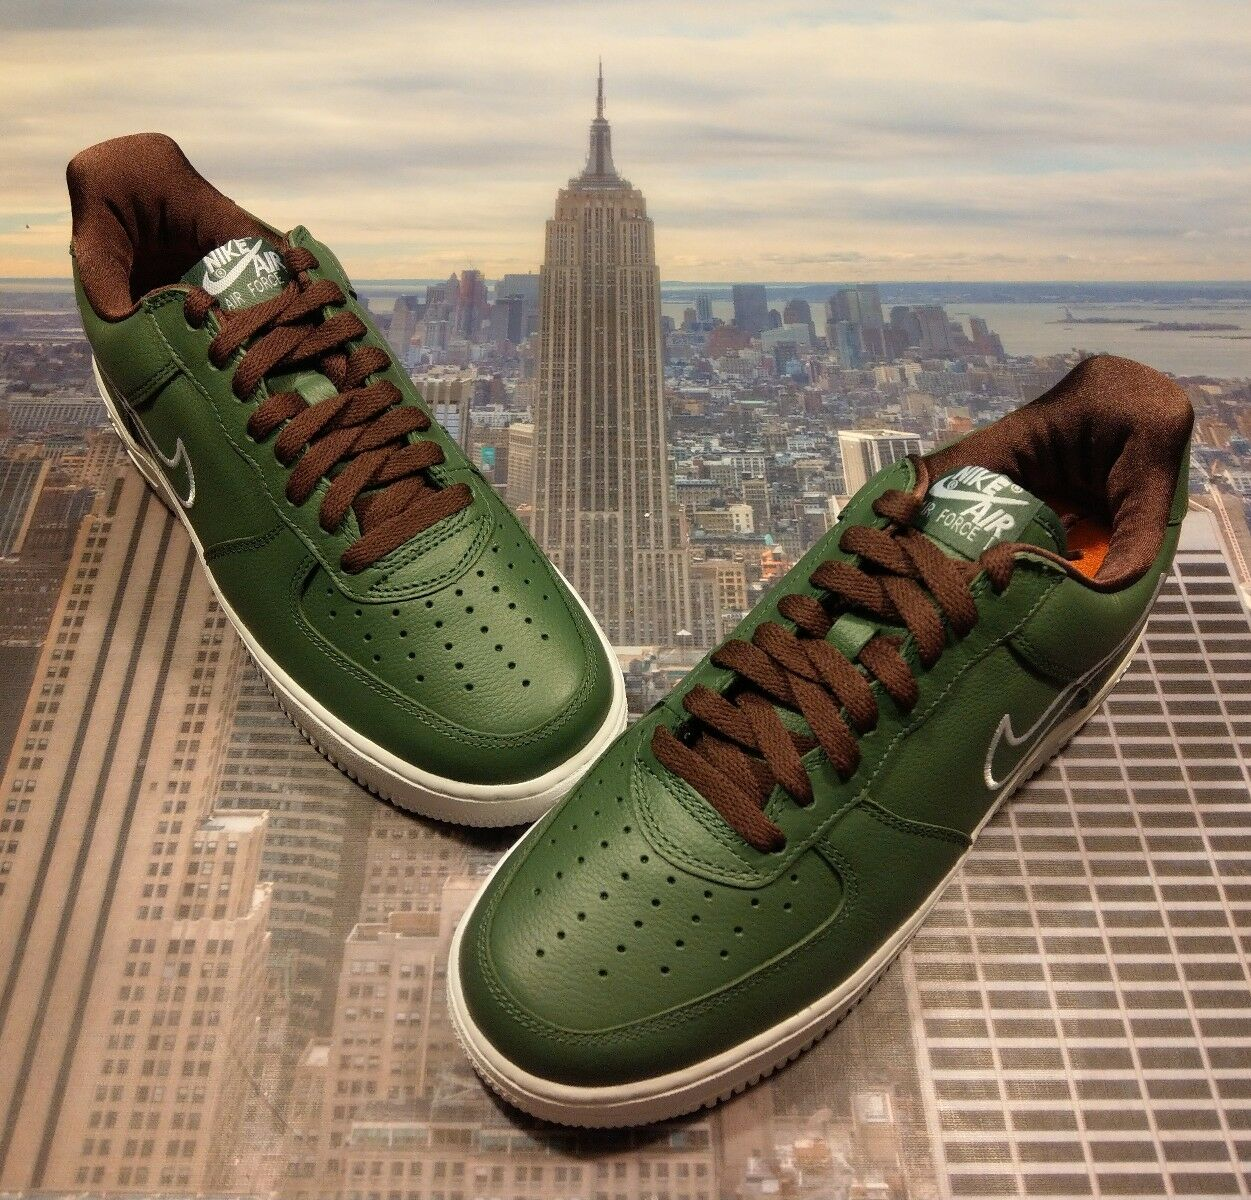 Nike Air Force 1 Low Retro Hong Kong Deep Forest Size 7.5 Mid High 845053 300